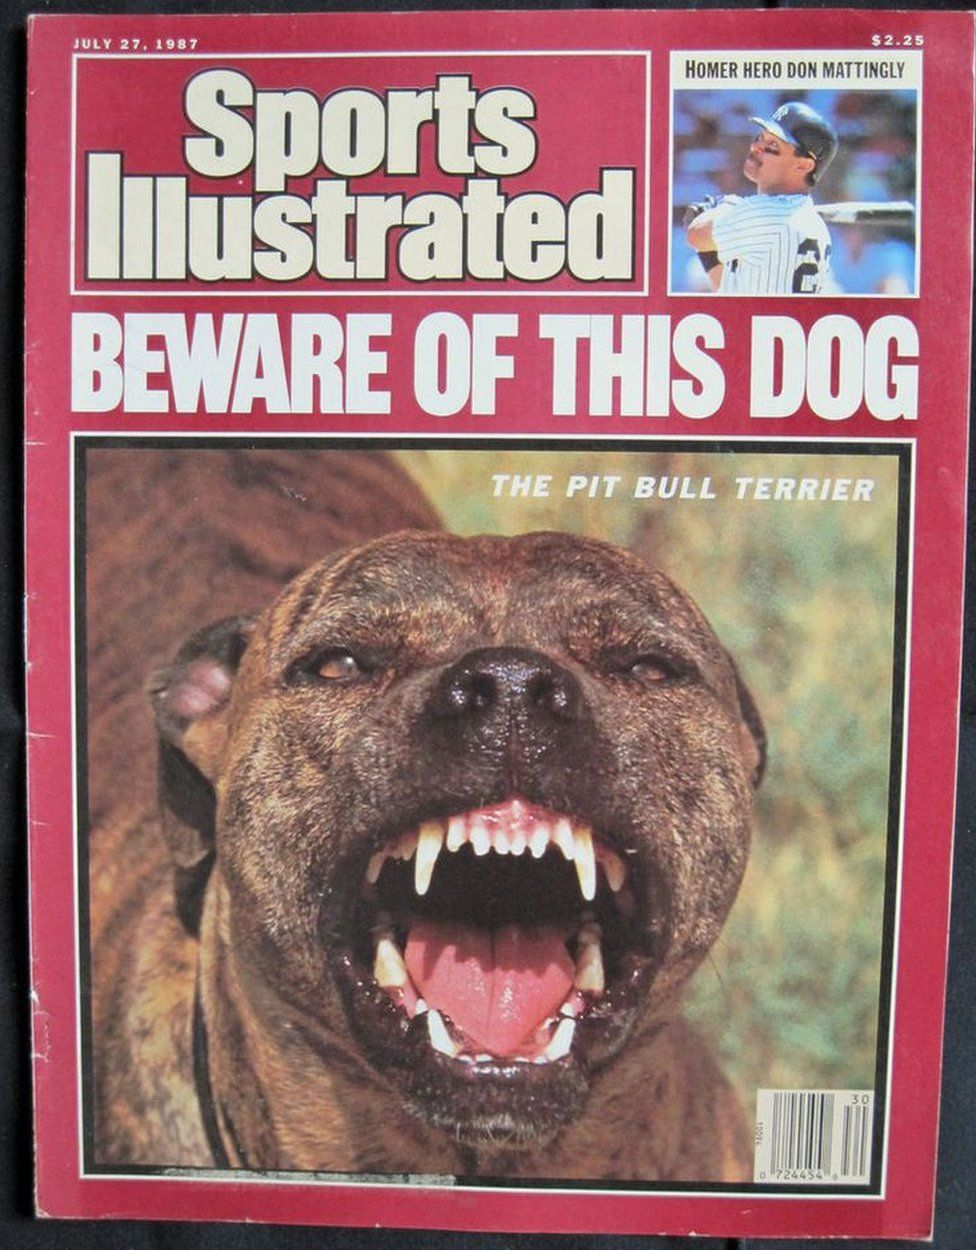 A short history of the dangerous dog and why certain breeds are sports illustrated front cover nvjuhfo Choice Image